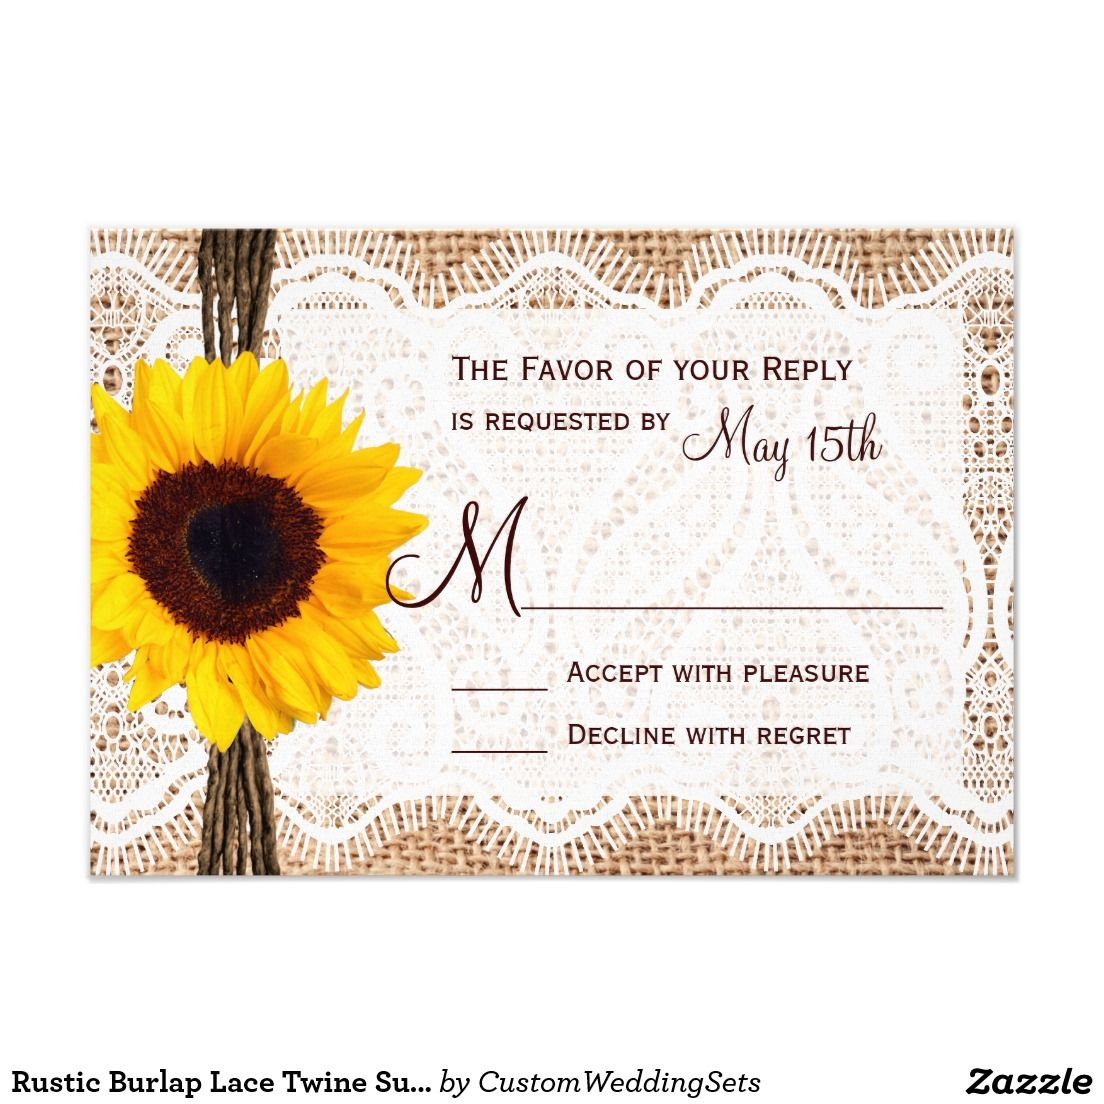 Rustic Burlap Lace Twine Sunflower Wedding RSVP Card. #country ...